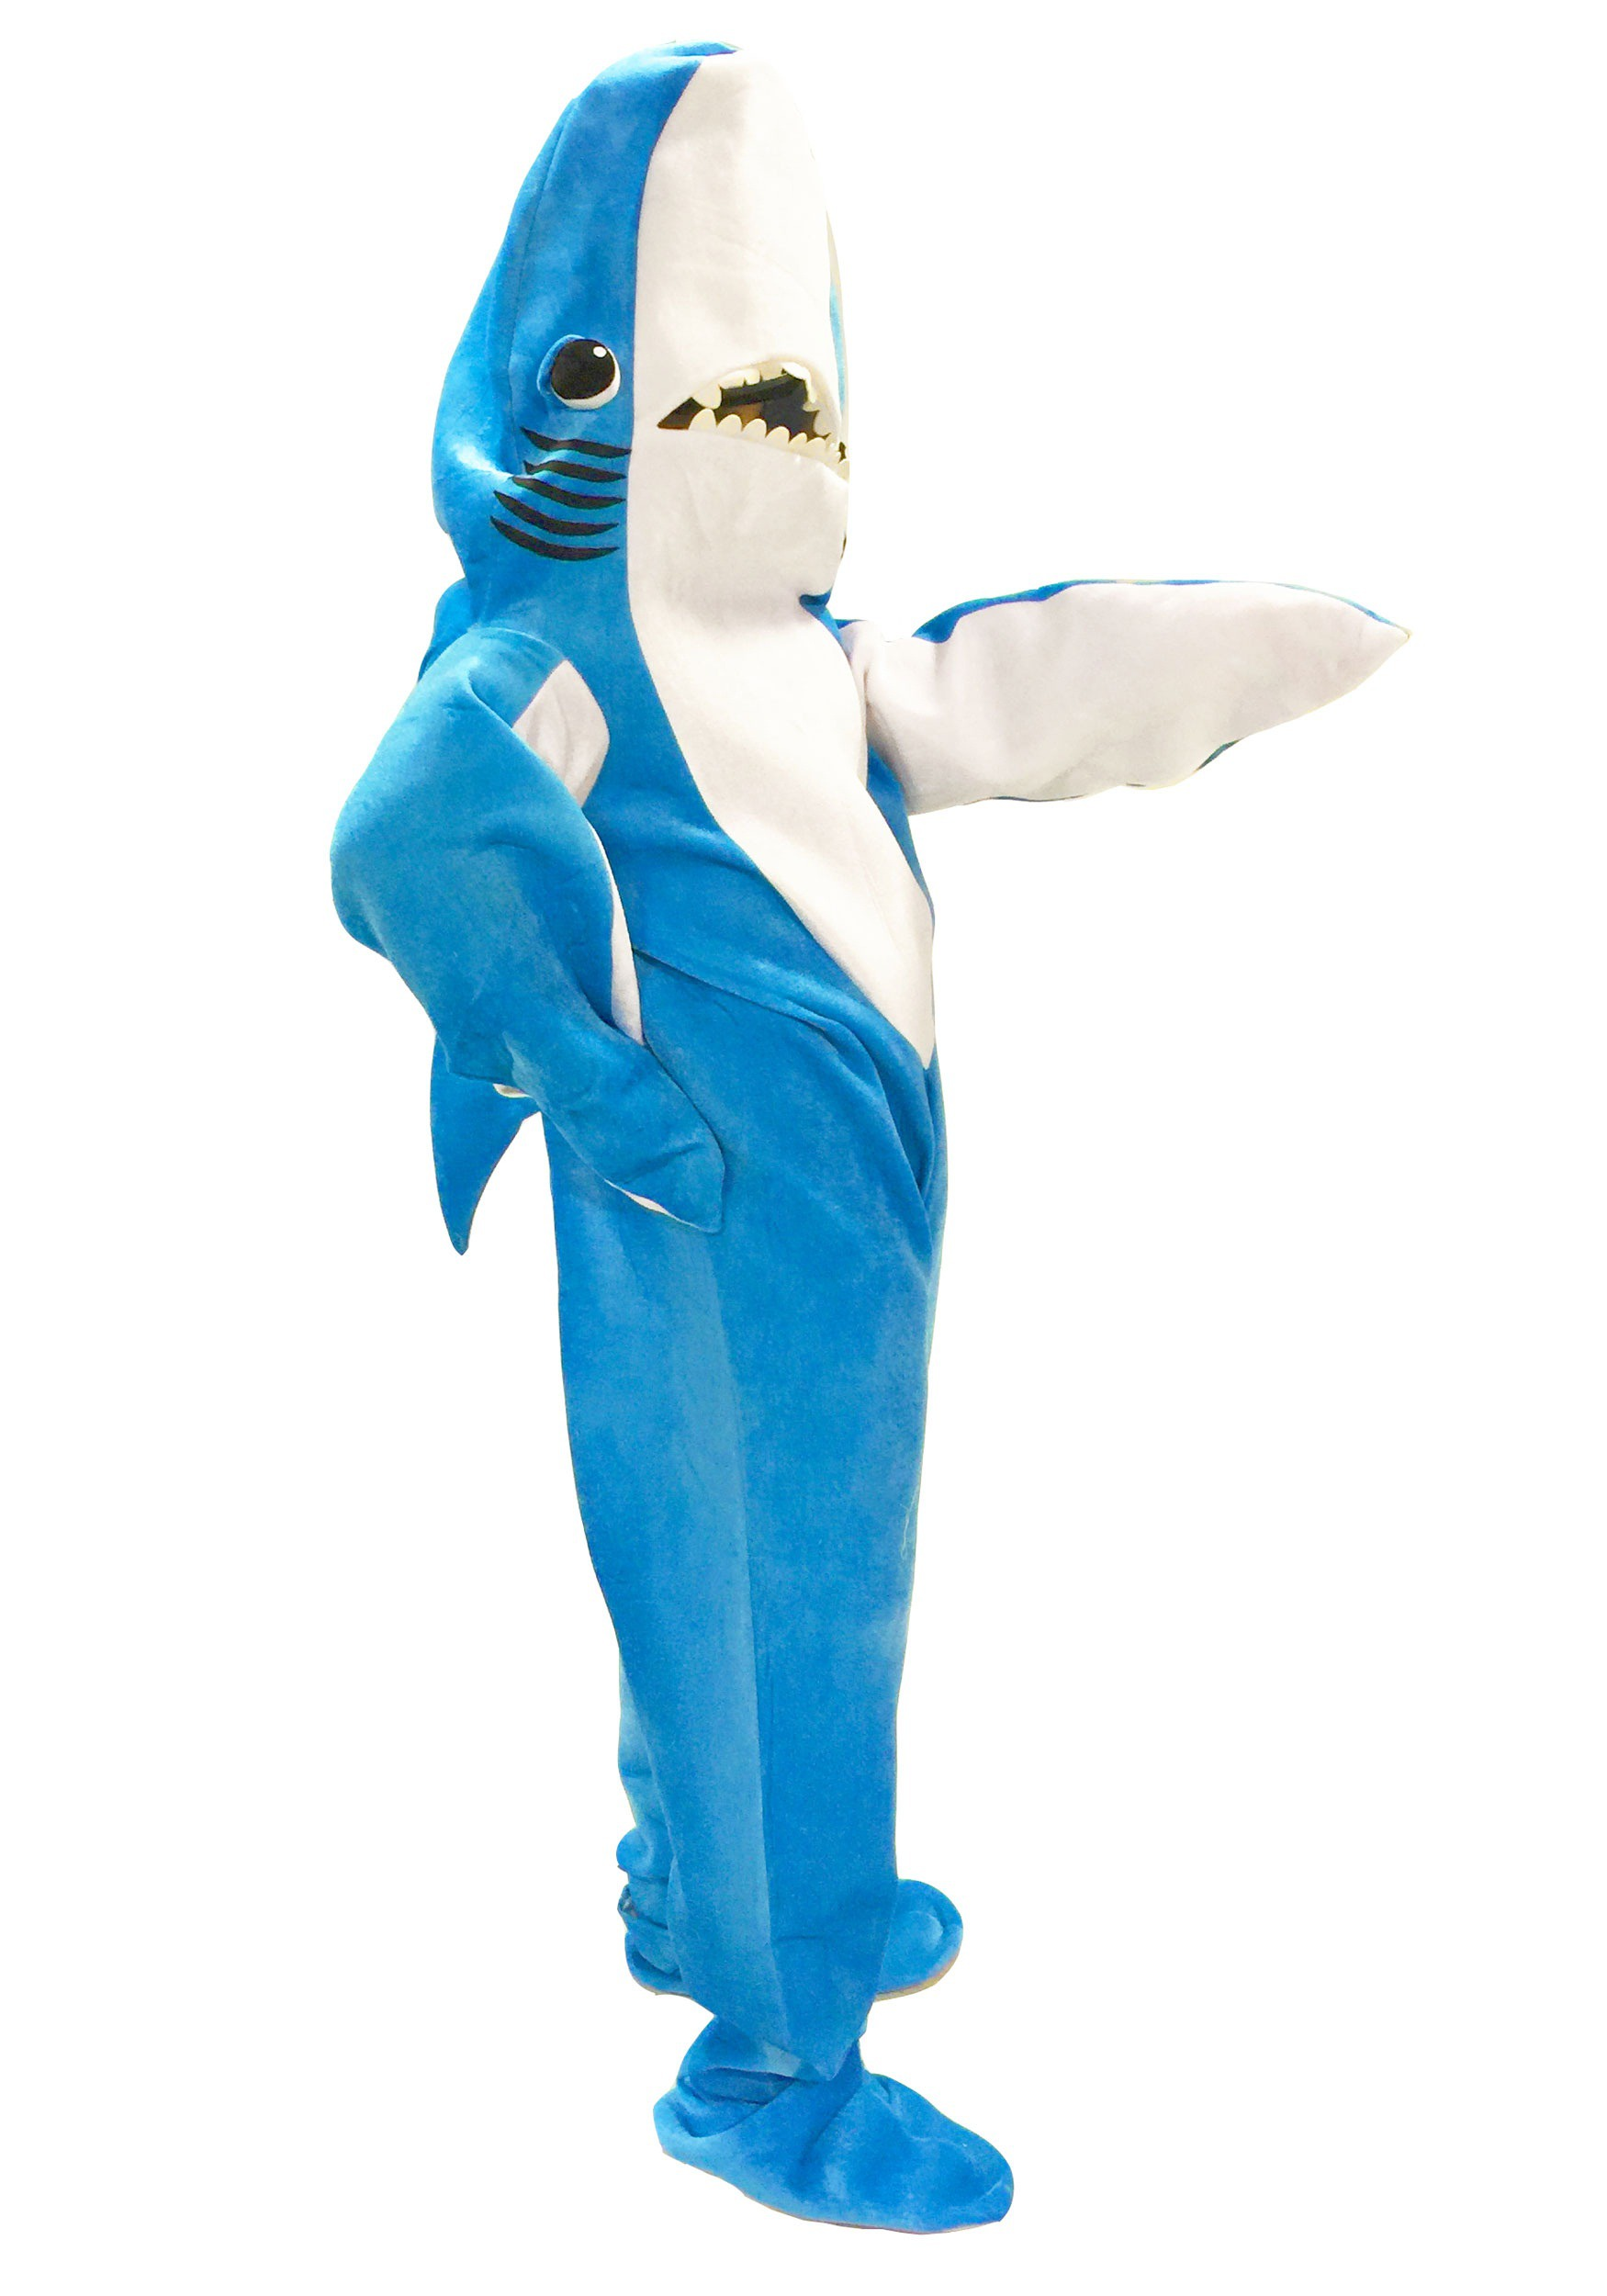 Halloween spider decorations - Adult Katy Perry Left Shark Costume